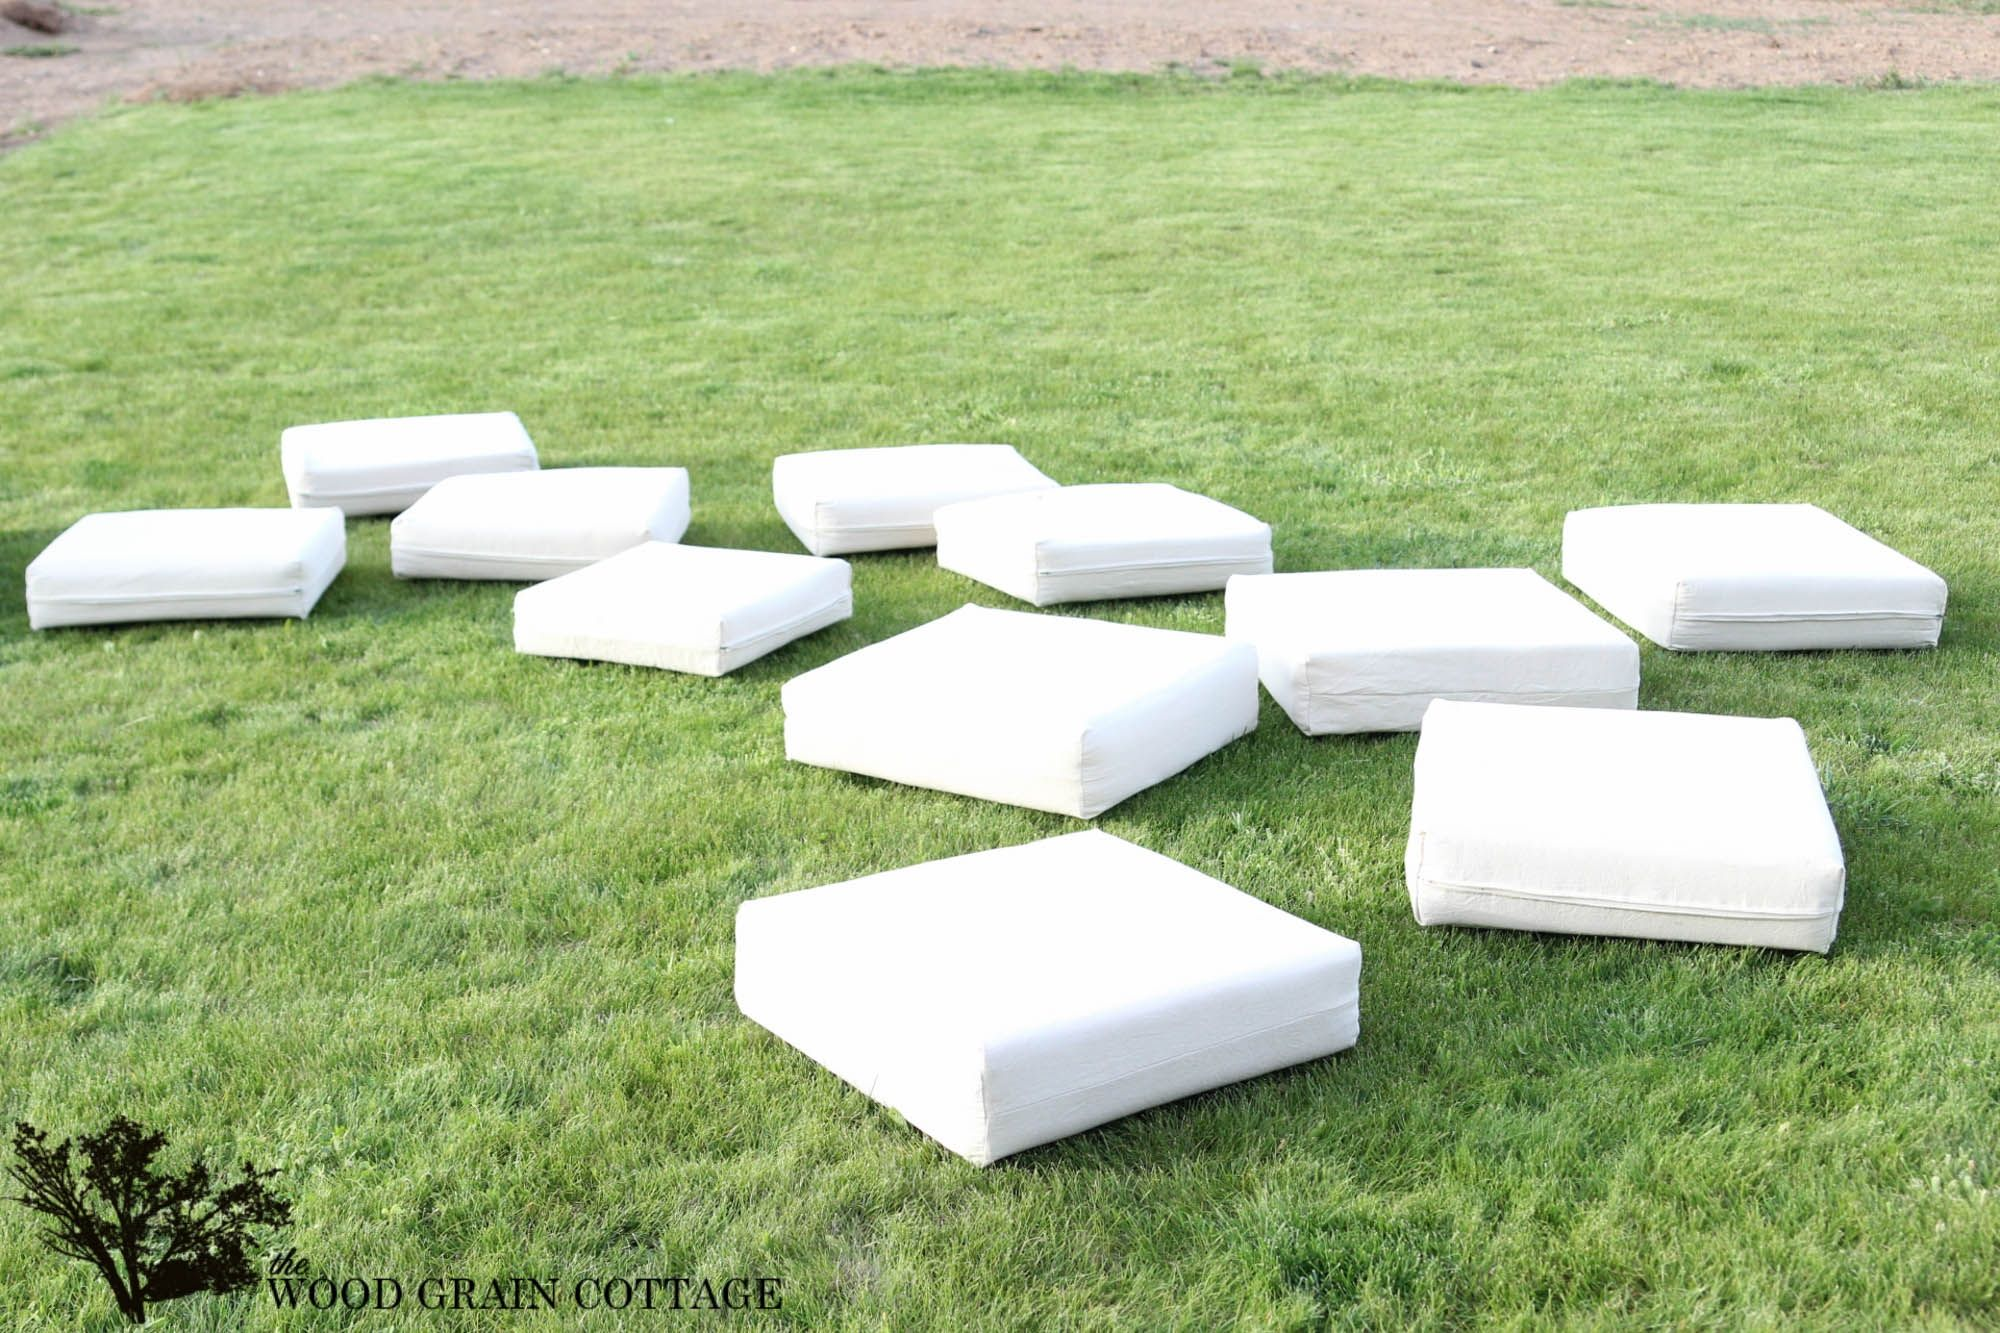 waterproof cushions for outdoor furniture. Waterproof Cushions Patio Furniture For Outdoor G